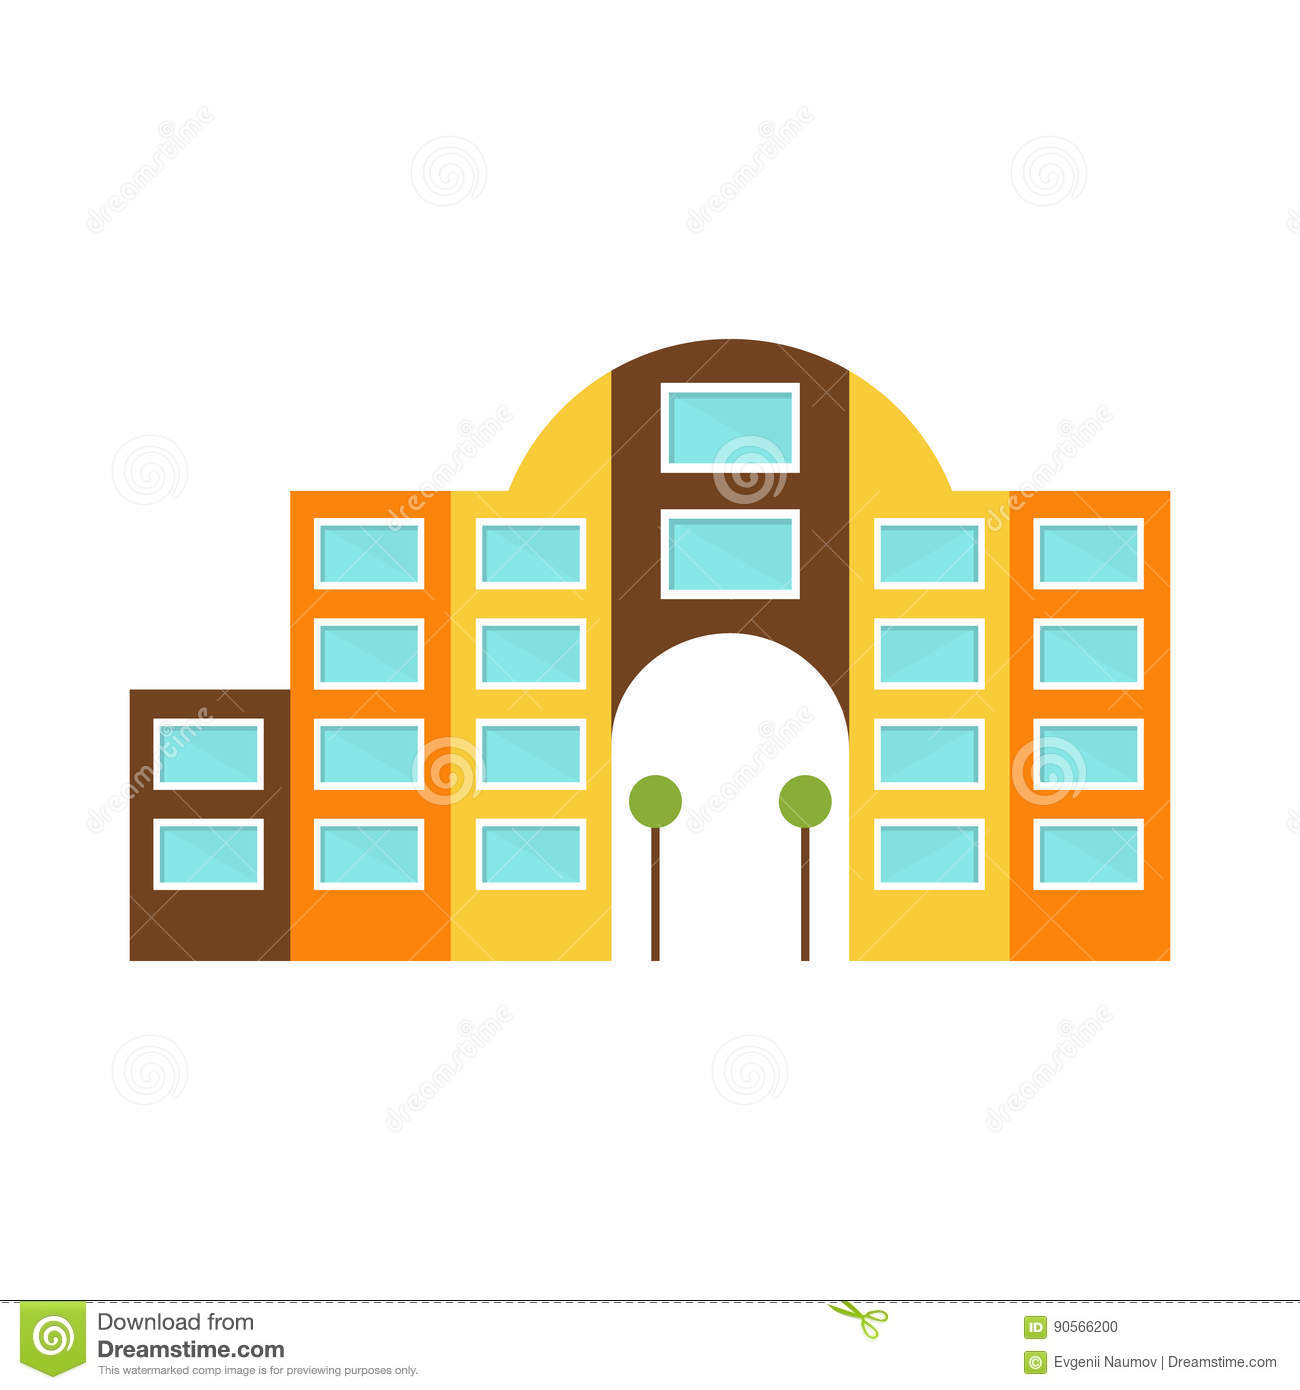 Archway cartoons illustrations vector stock images for Exterior design templates